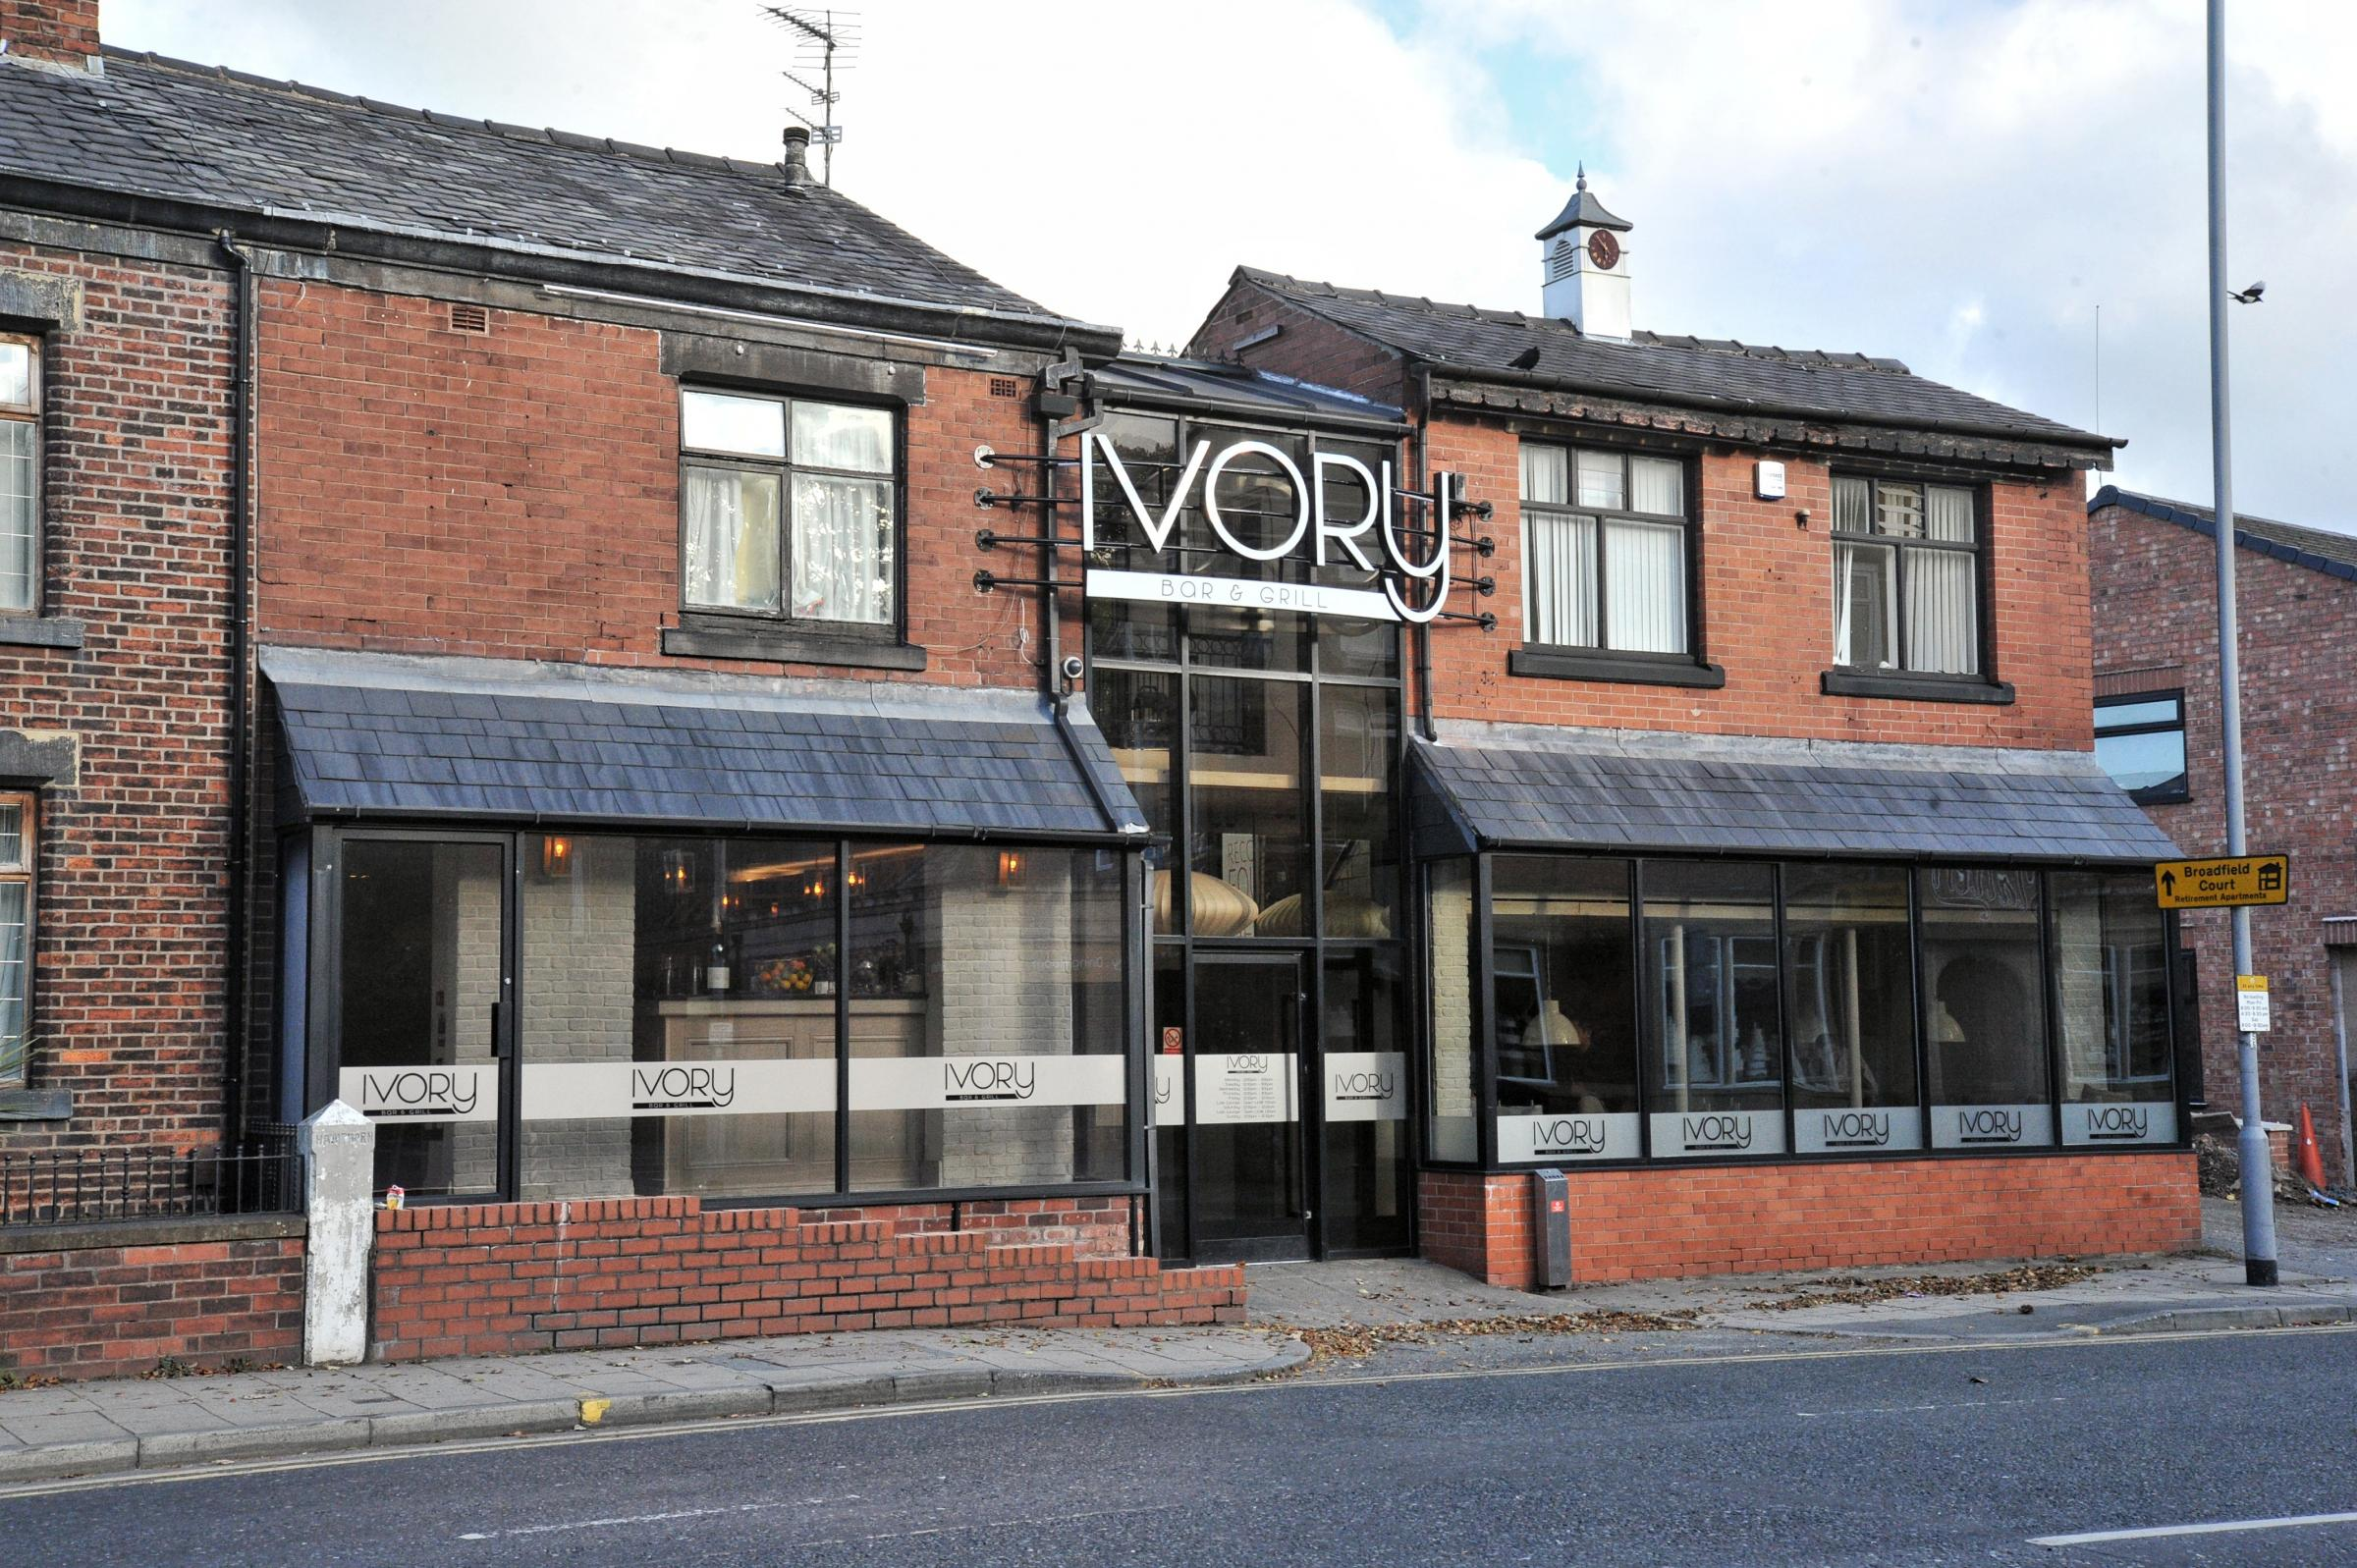 Amore Cucina And Bar Whitefield Manchester Take A Look Inside New Whitefield Restaurant Ivory Bar And Grill